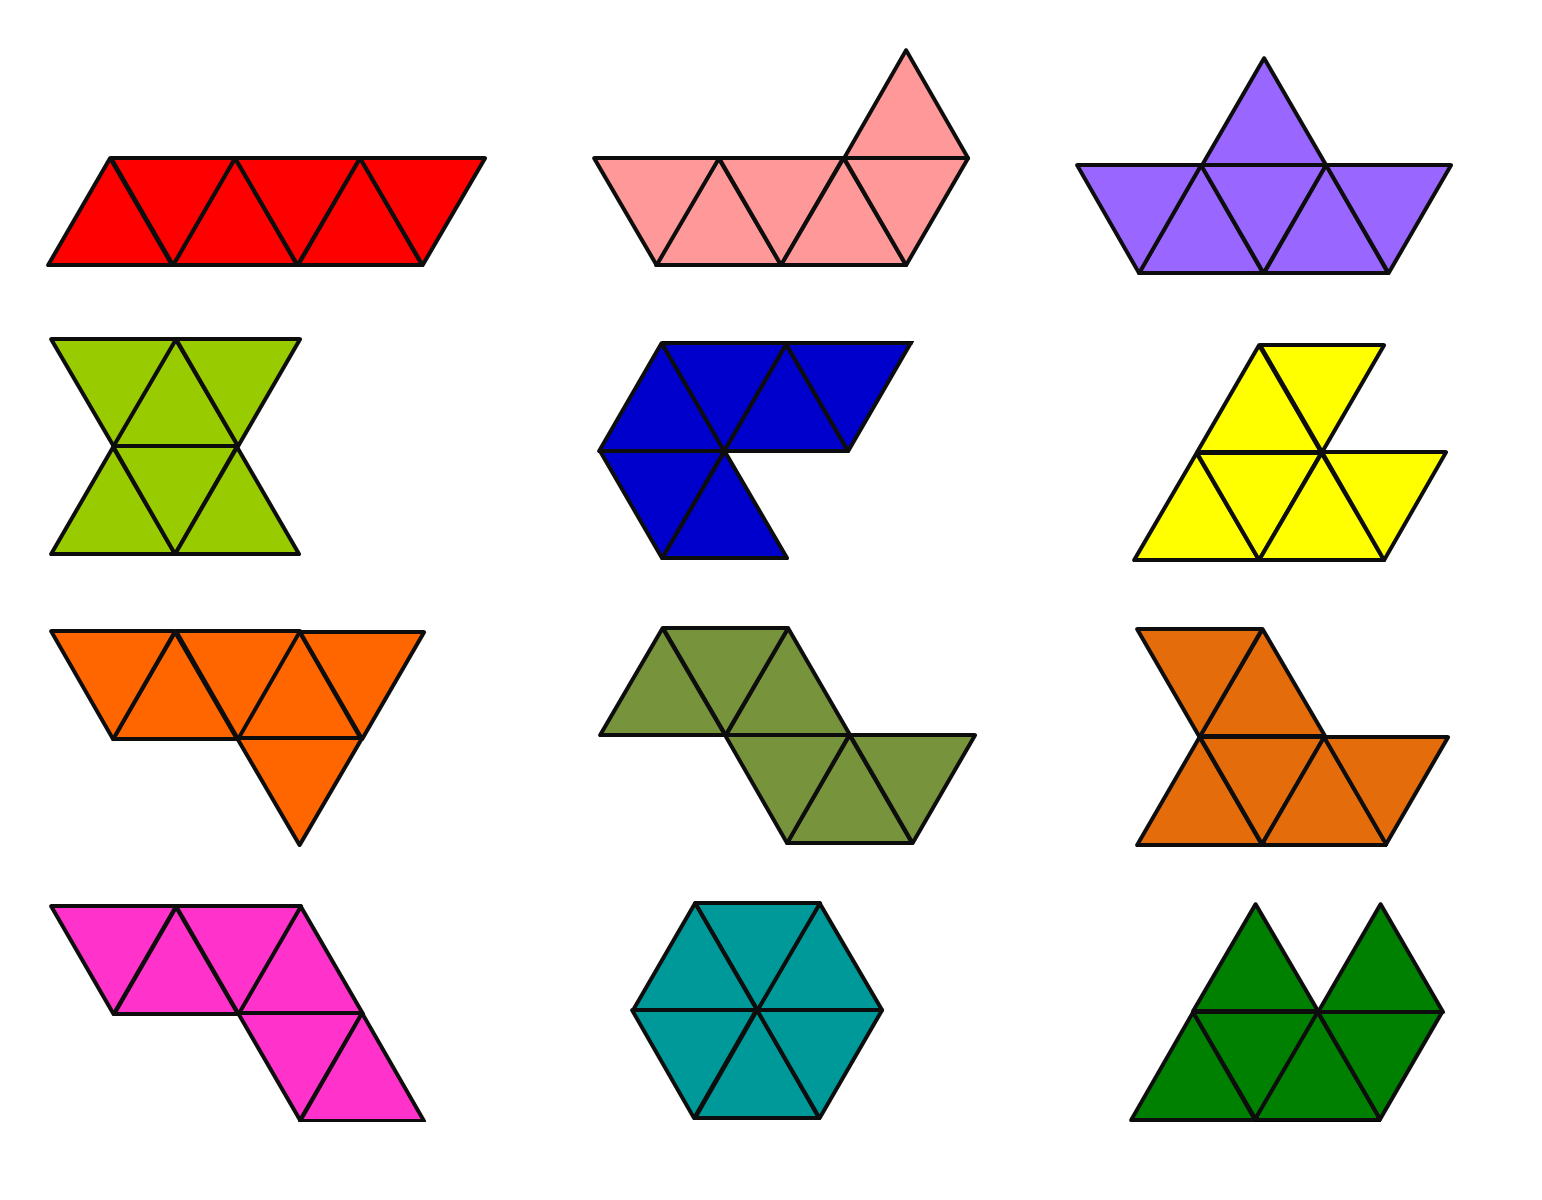 Polyiamonds And Rotational Symmetry on How To Add Fractions 1 3 4